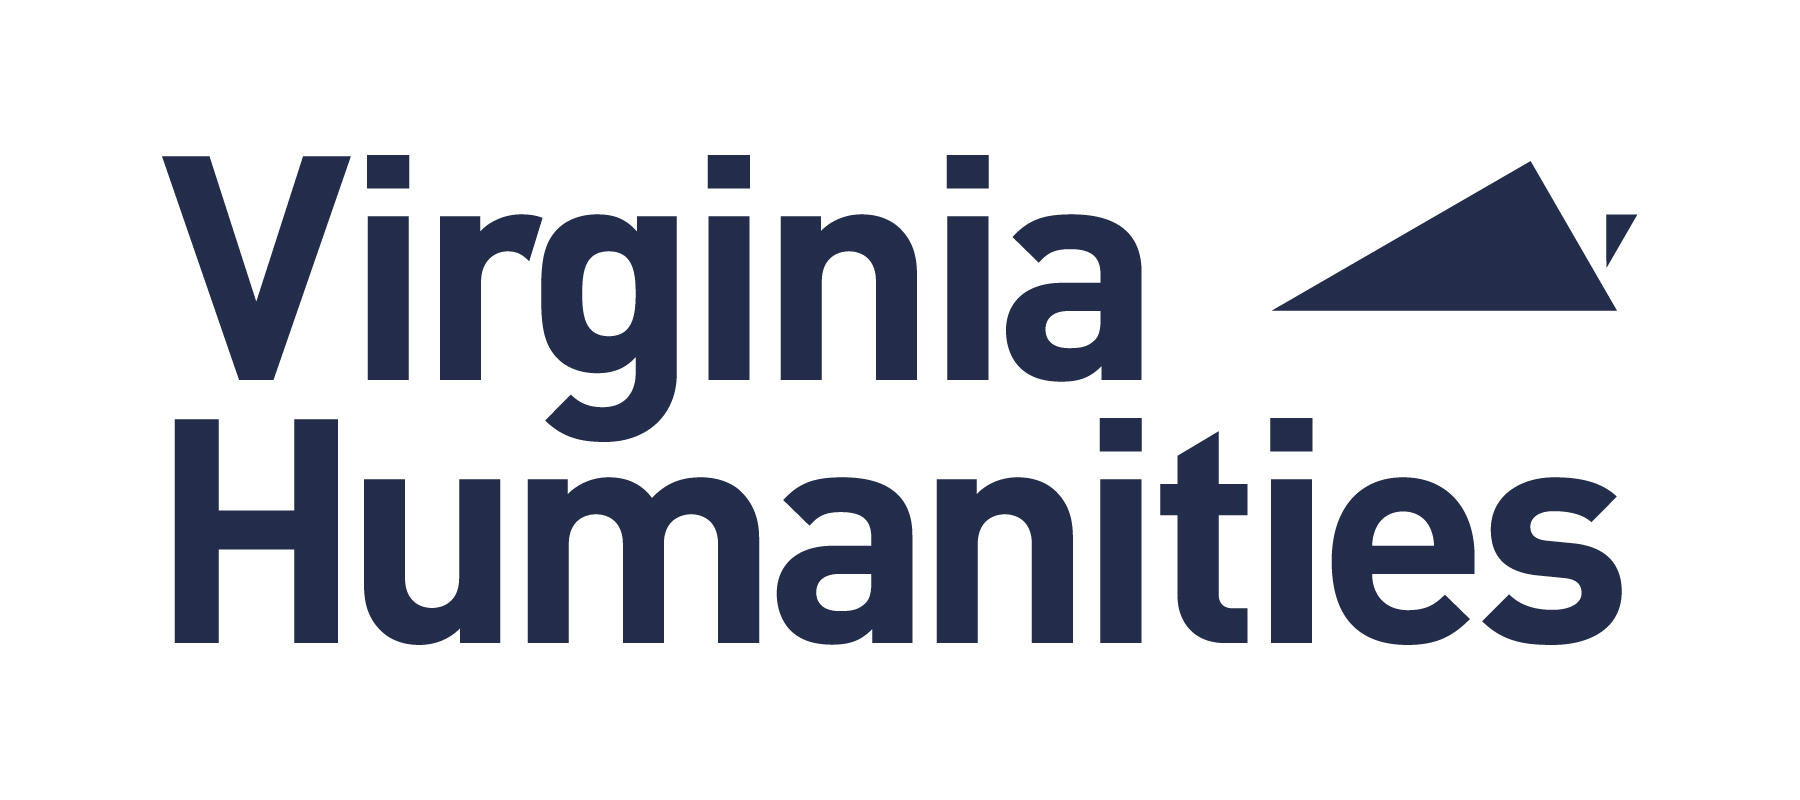 This project made possible with the generous support of Virginia Humanities.